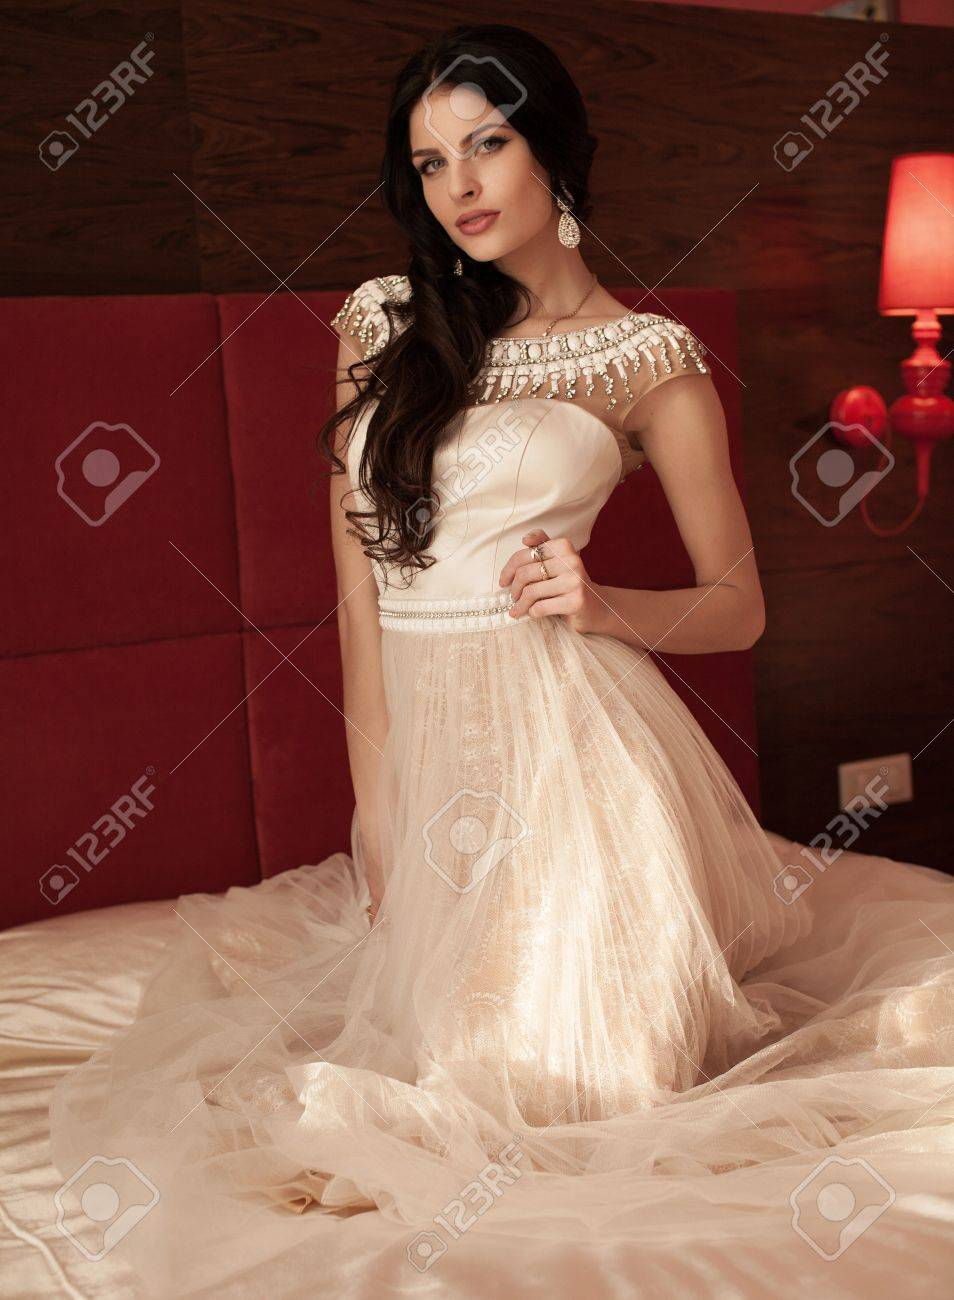 Hairstyle Beautiful Brunette Bride Girl With Long Healthy Wavy